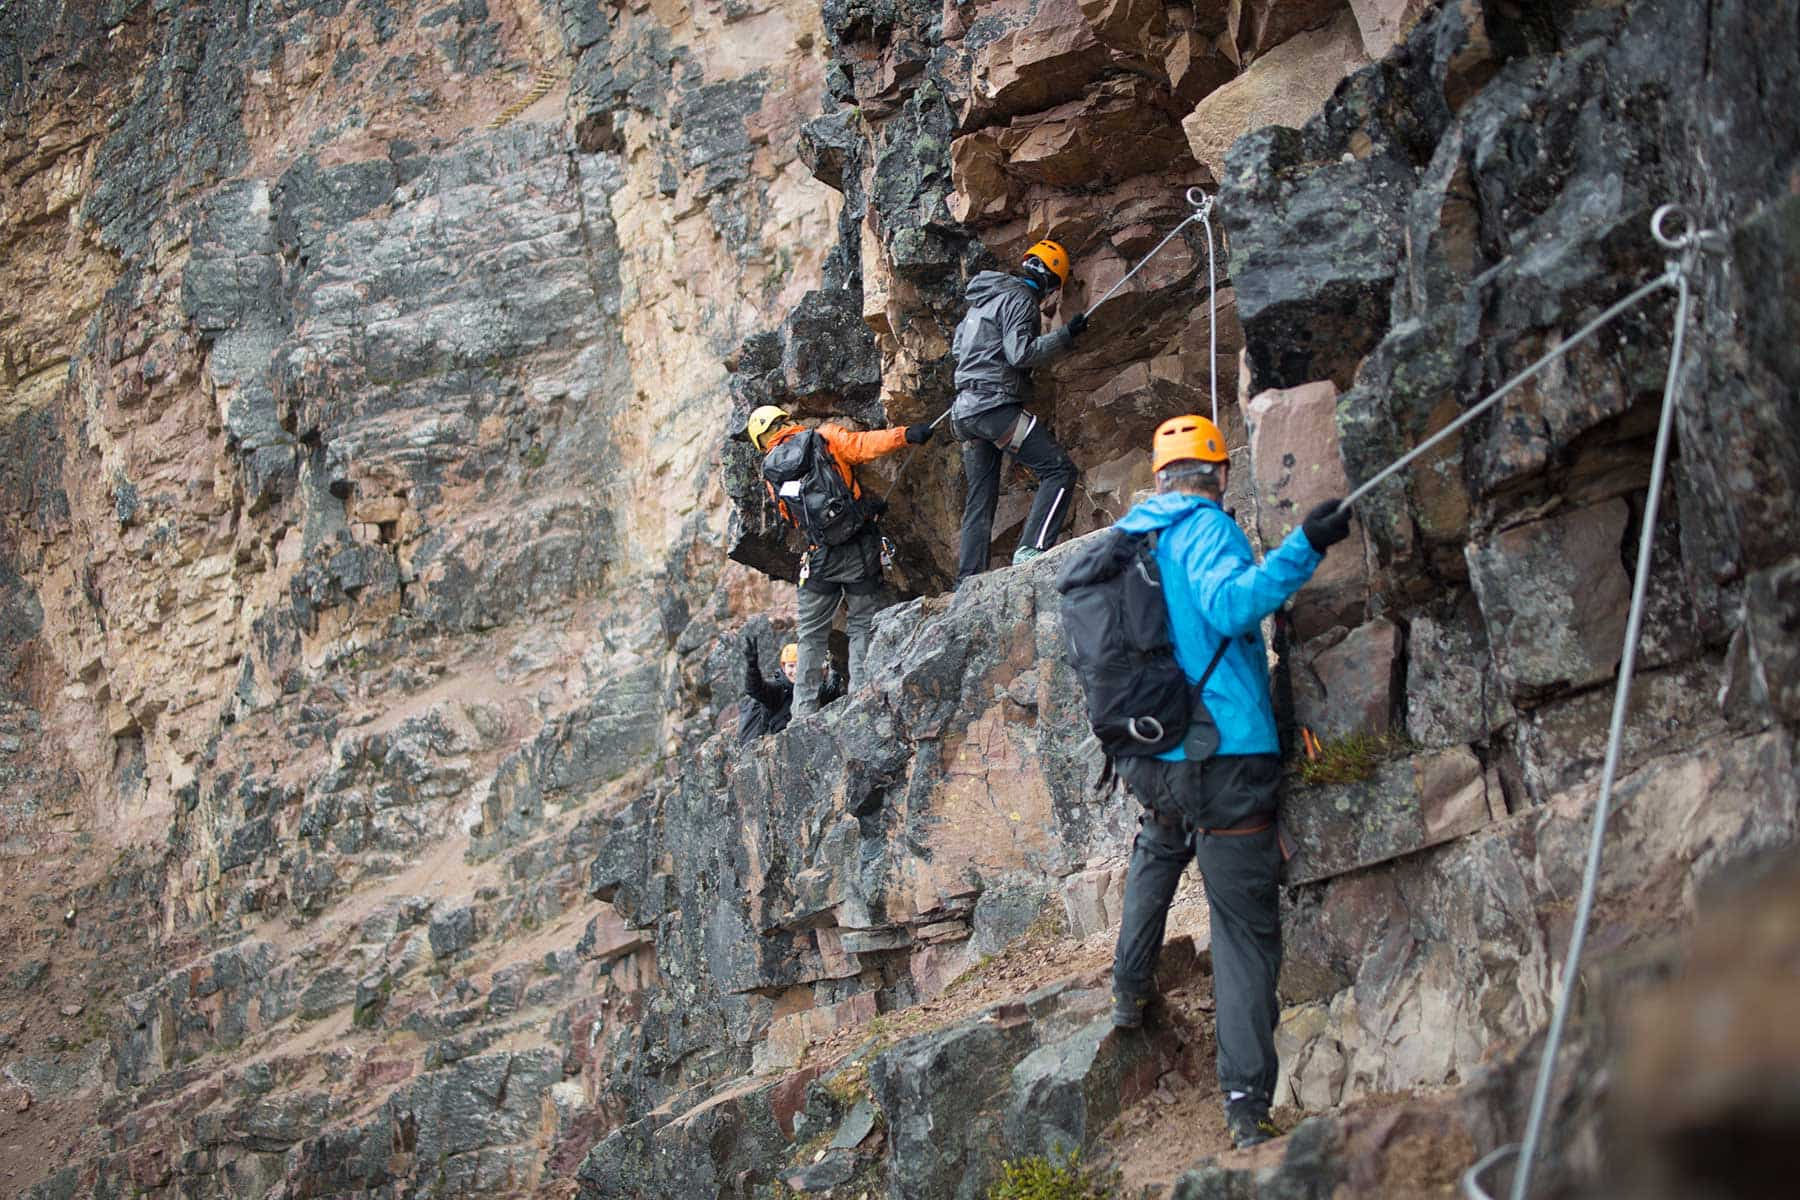 Scaling the cliffside on the via ferrata